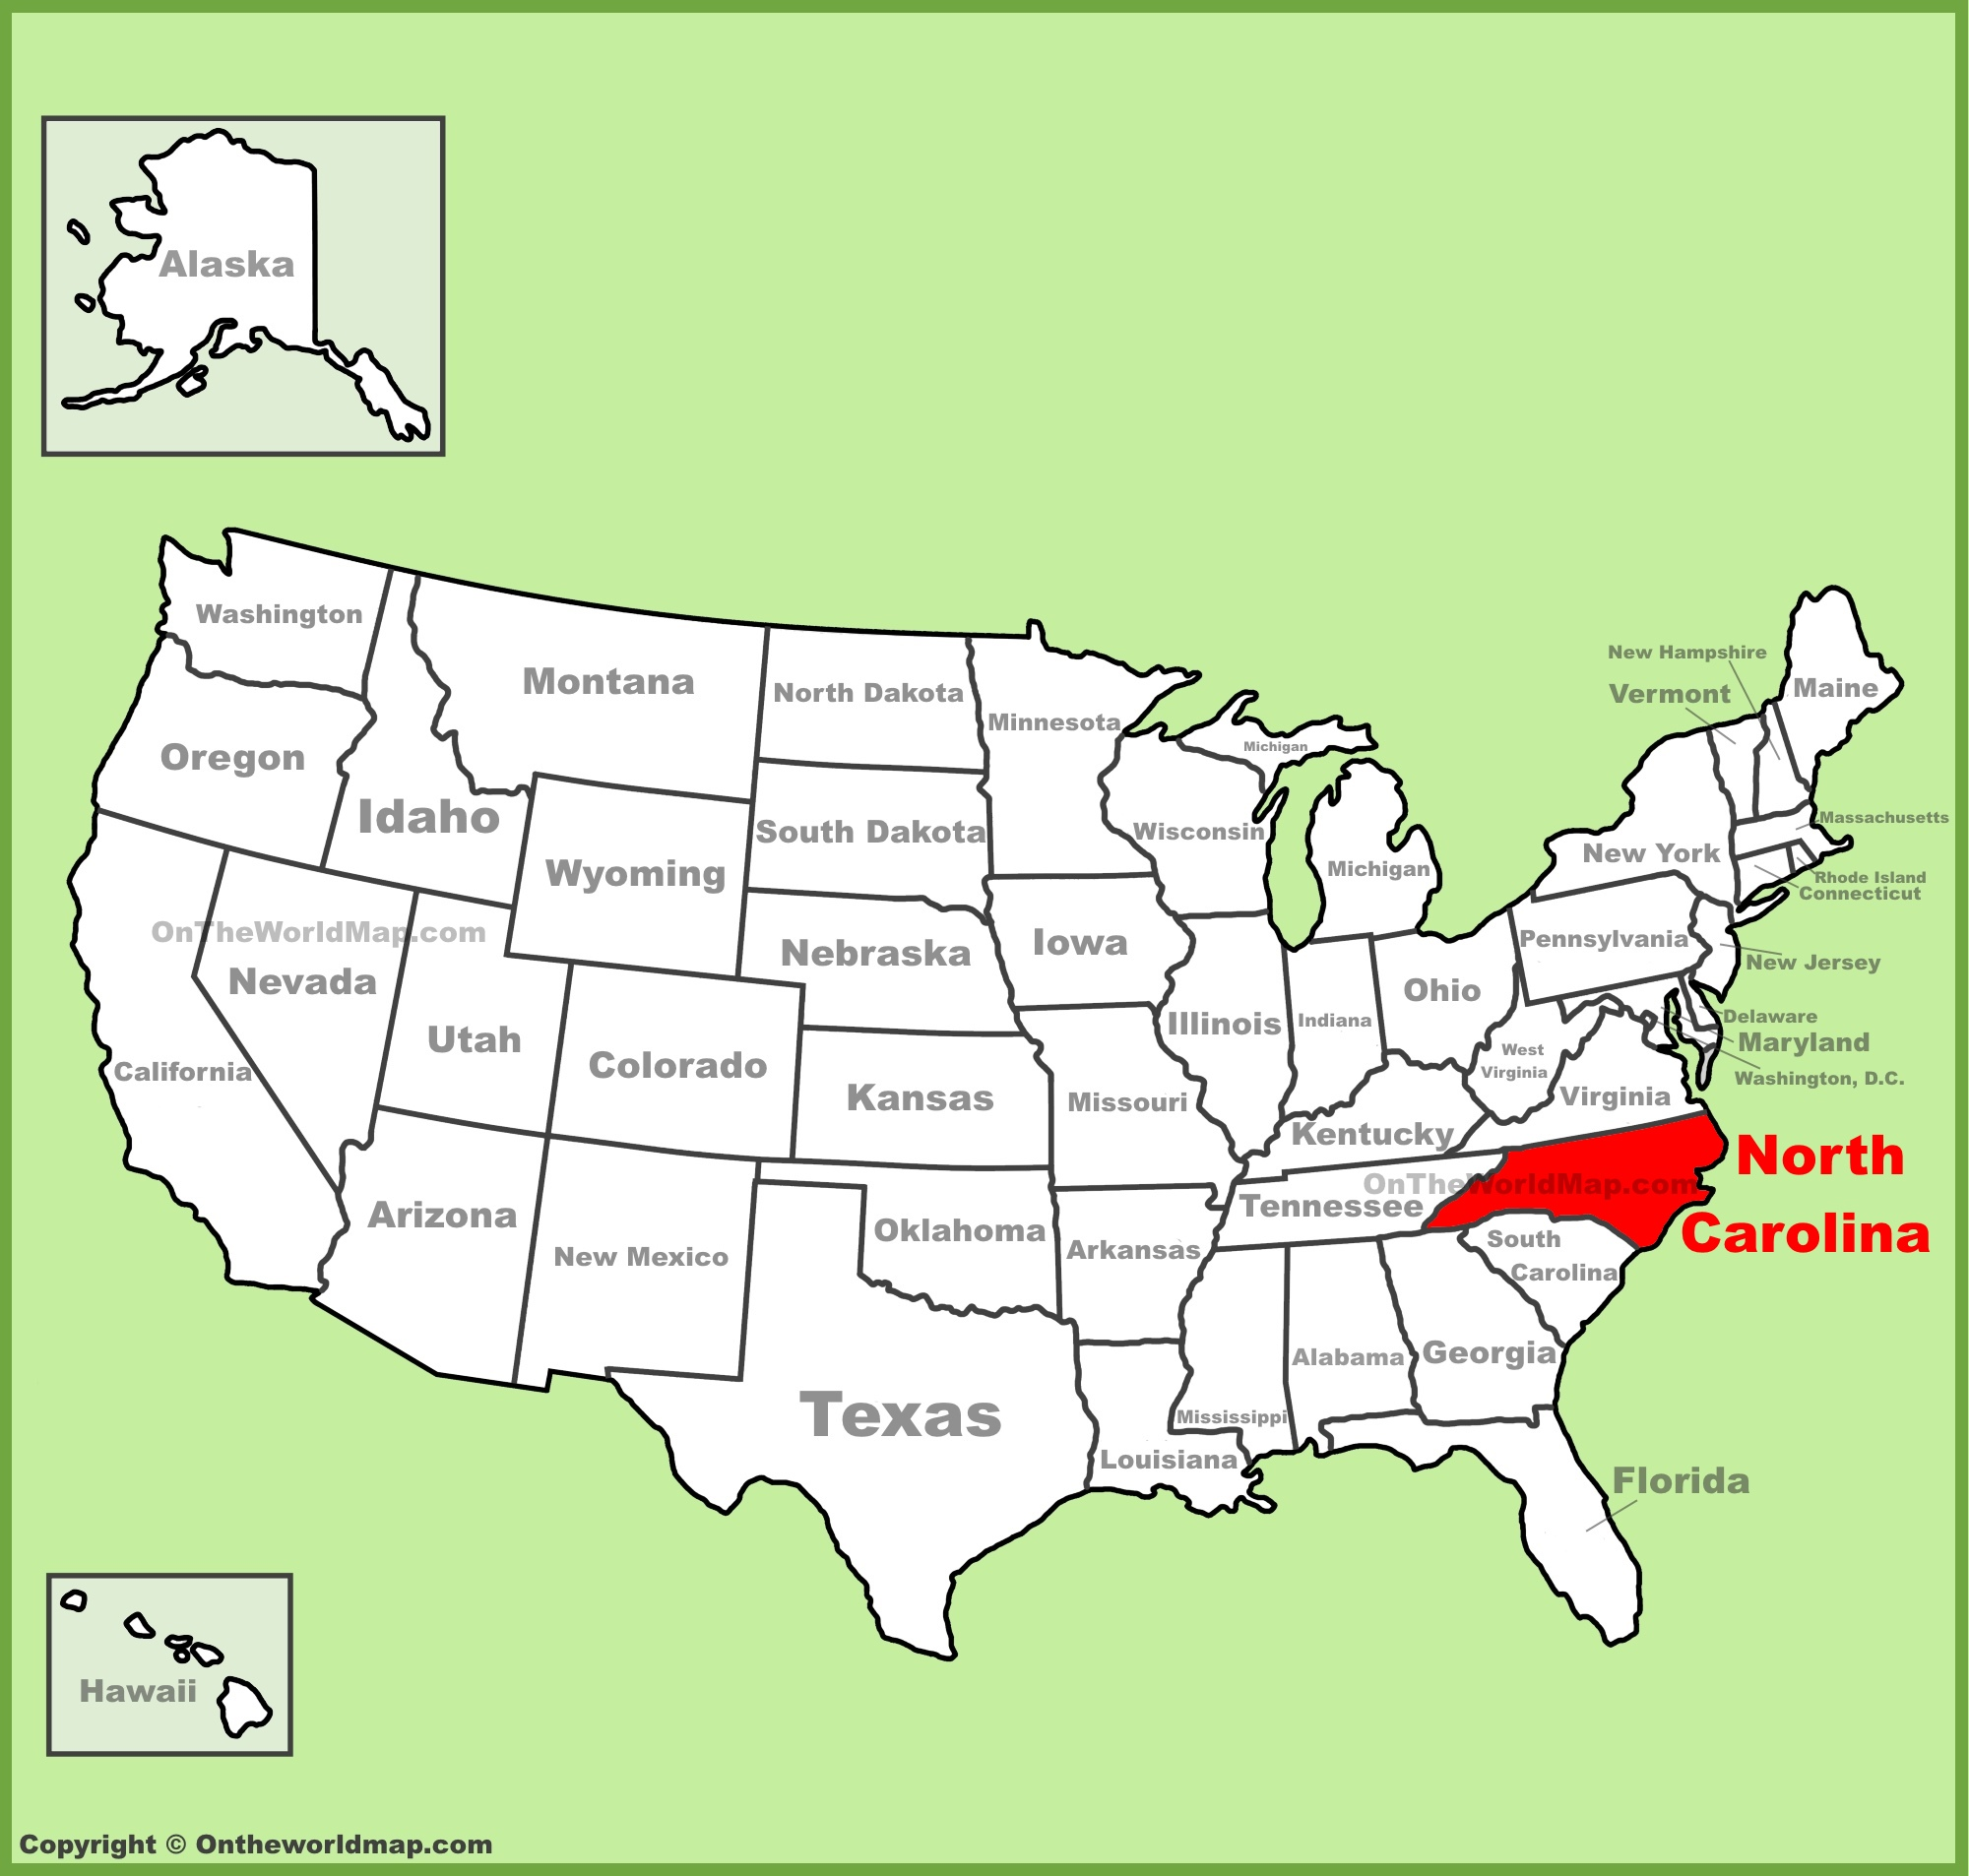 North Carolina Location On The US Map - North carolina on a us map